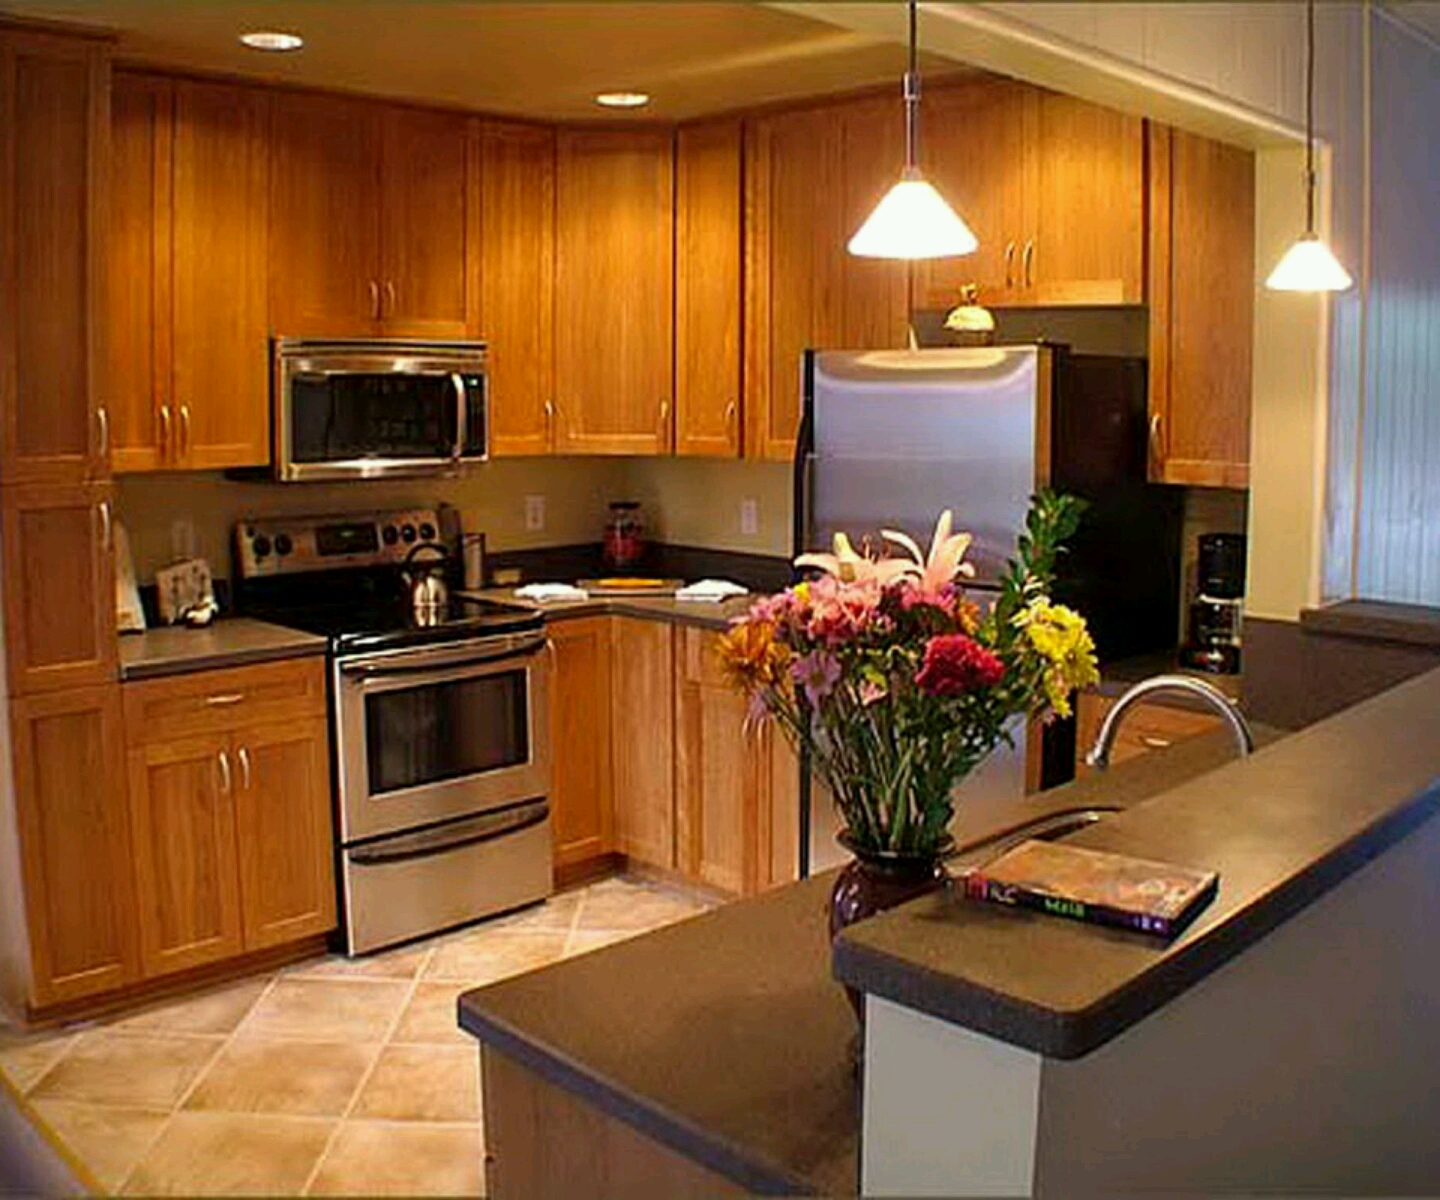 New Home Designs Latest Modern Home Kitchen Cabinet: Modern Wooden Kitchen Cabinets Designs.